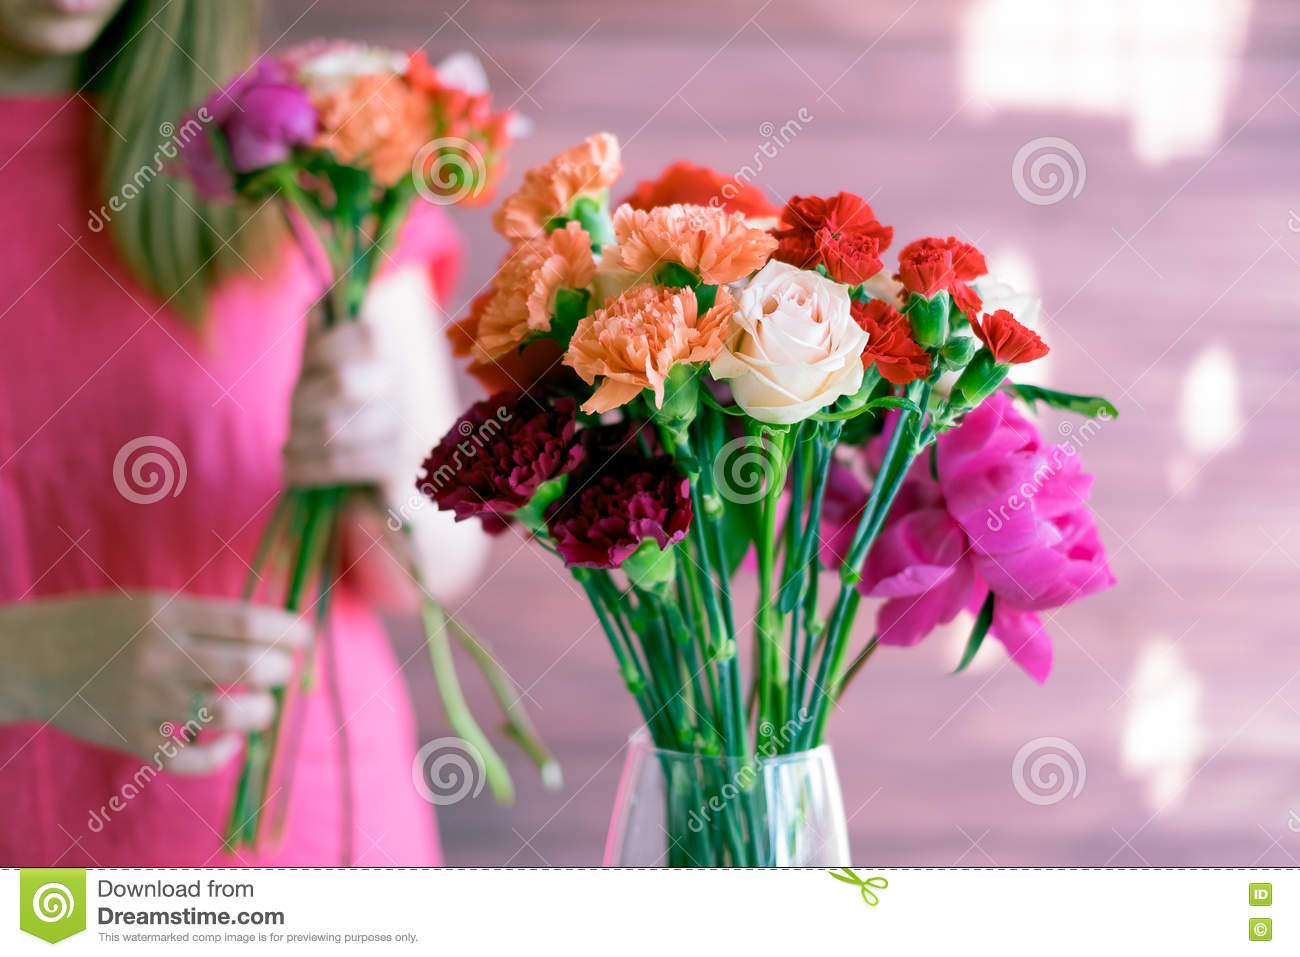 Flowers in a vase and a girl in the background